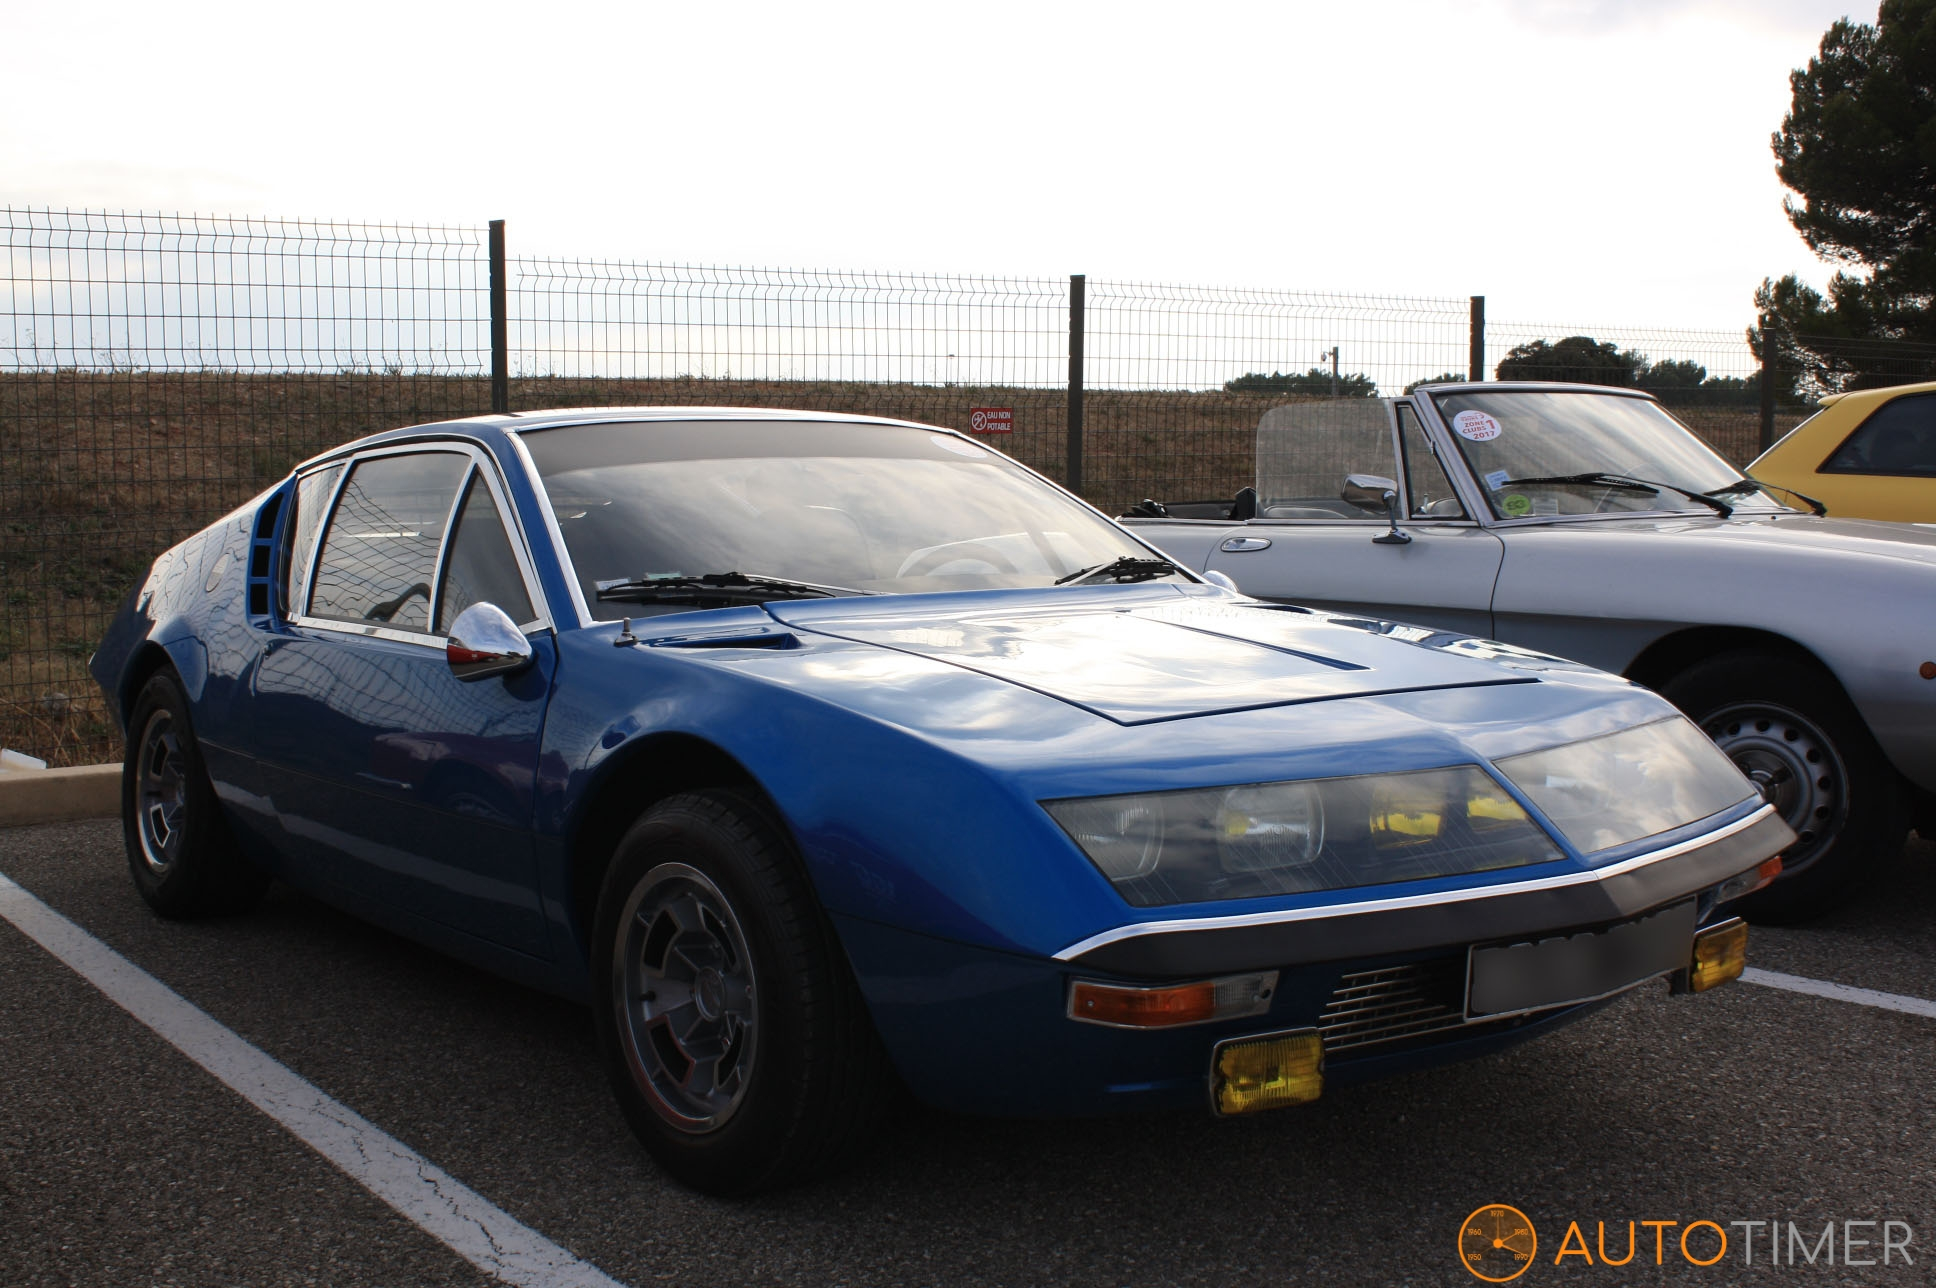 Renault Alpine A310 VE